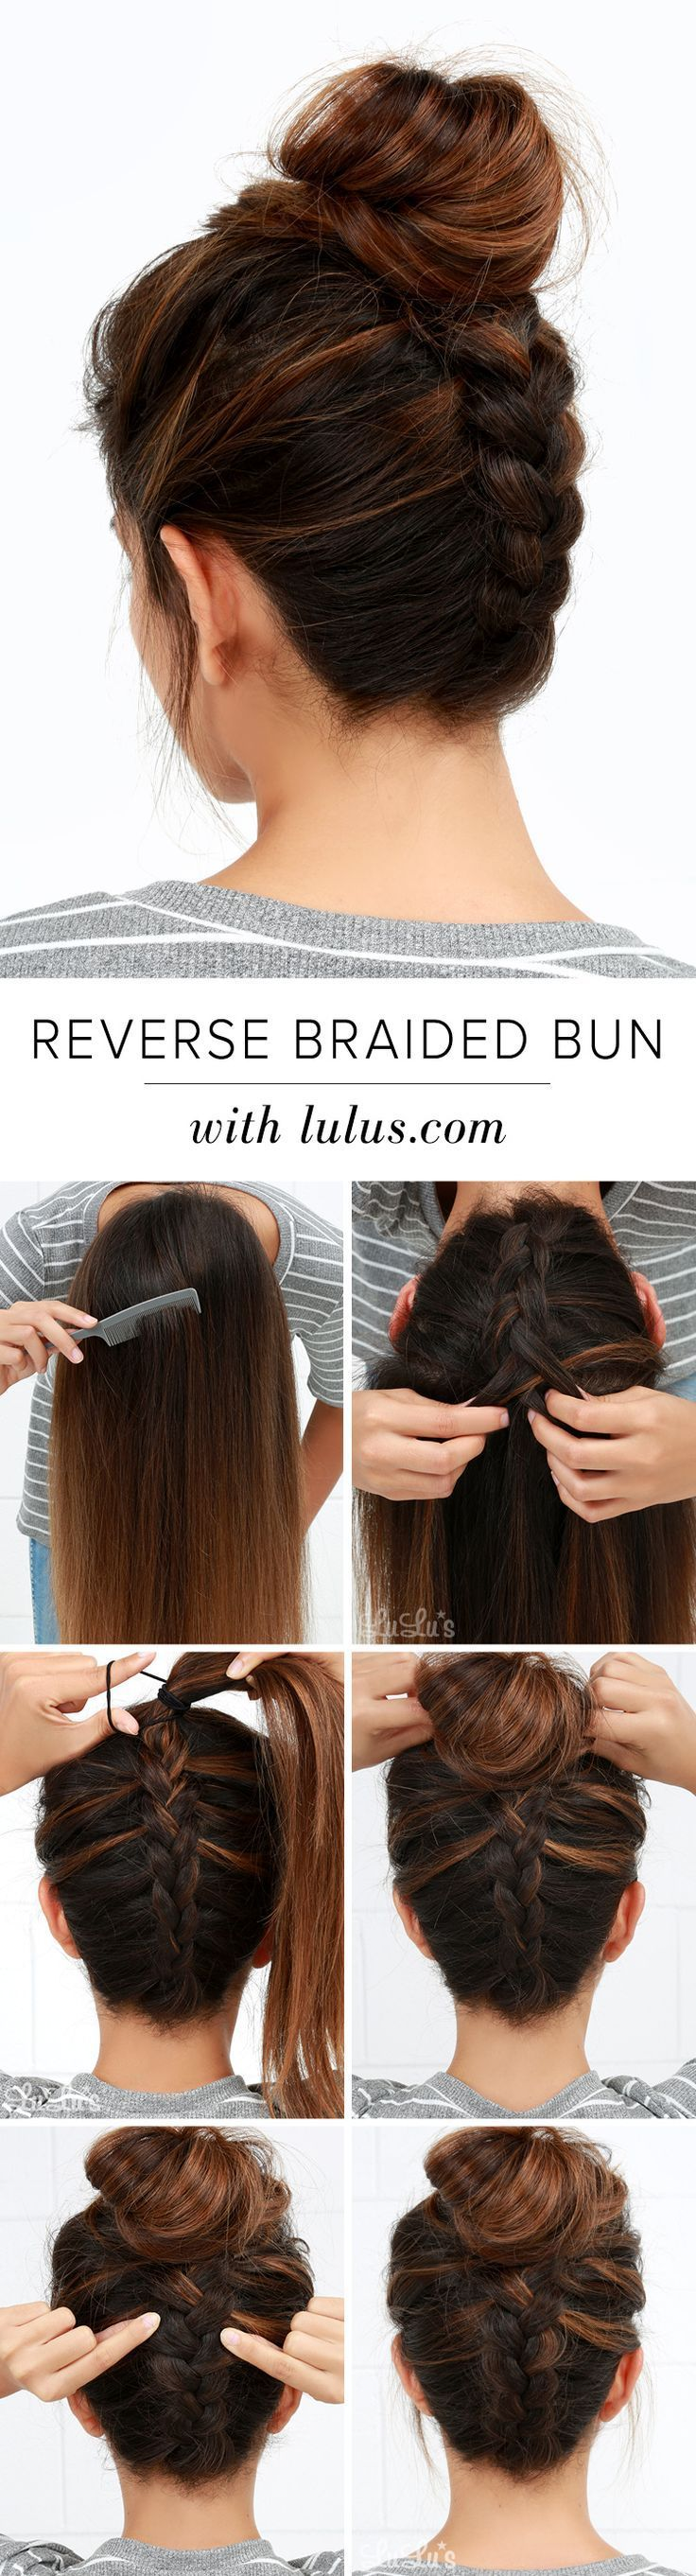 LuLu*s How-To: Reverse Braided Bun Hair Tutorial at www.lulus.com!